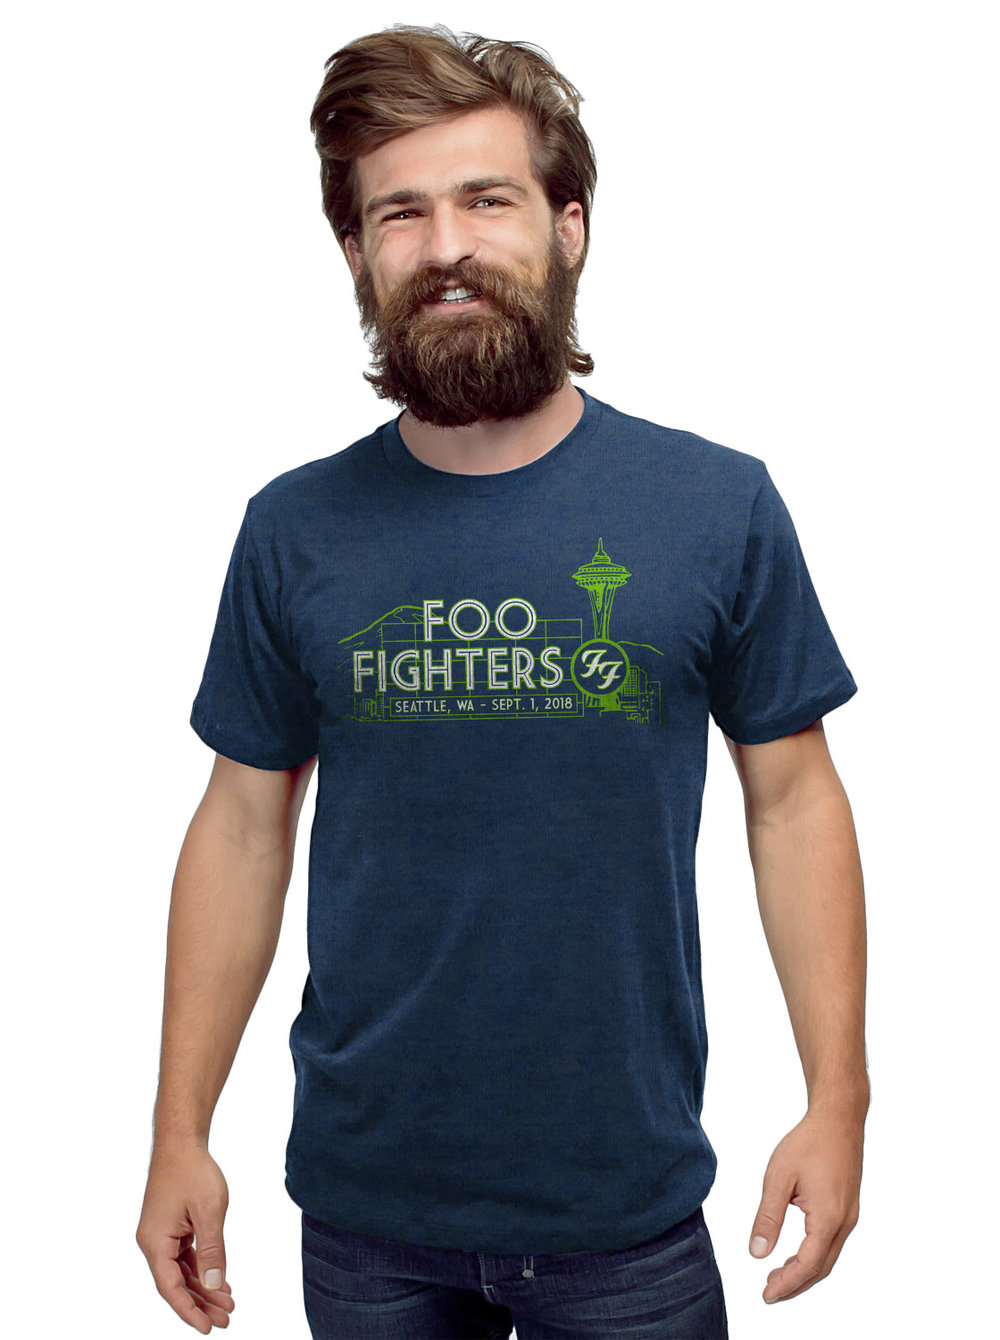 foo-fighters-seattle-model.jpg